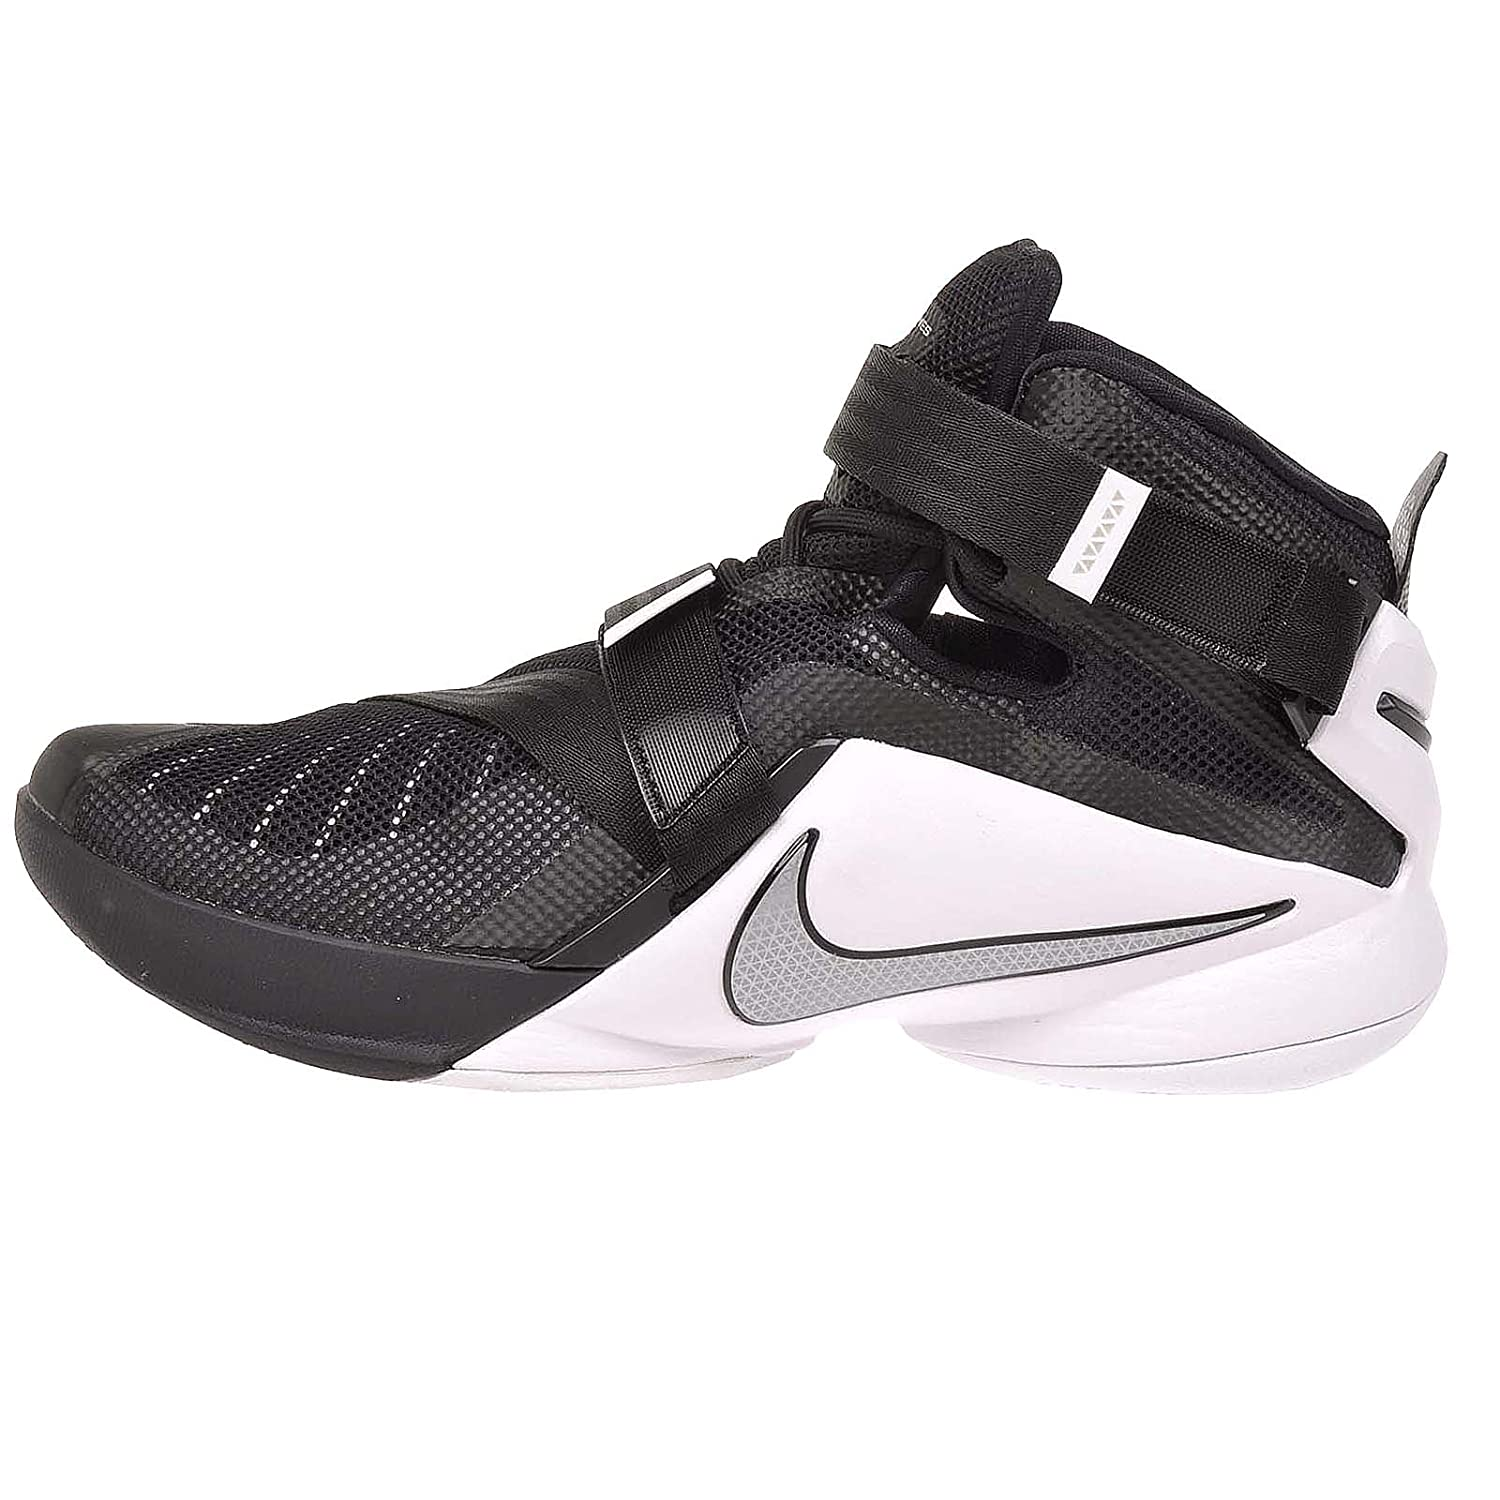 pretty nice f7e64 38a30 Nike Men's Lebron Soldier IX Team Basketball Shoe  Black/White/Anthracite/Silver Size 11 M US